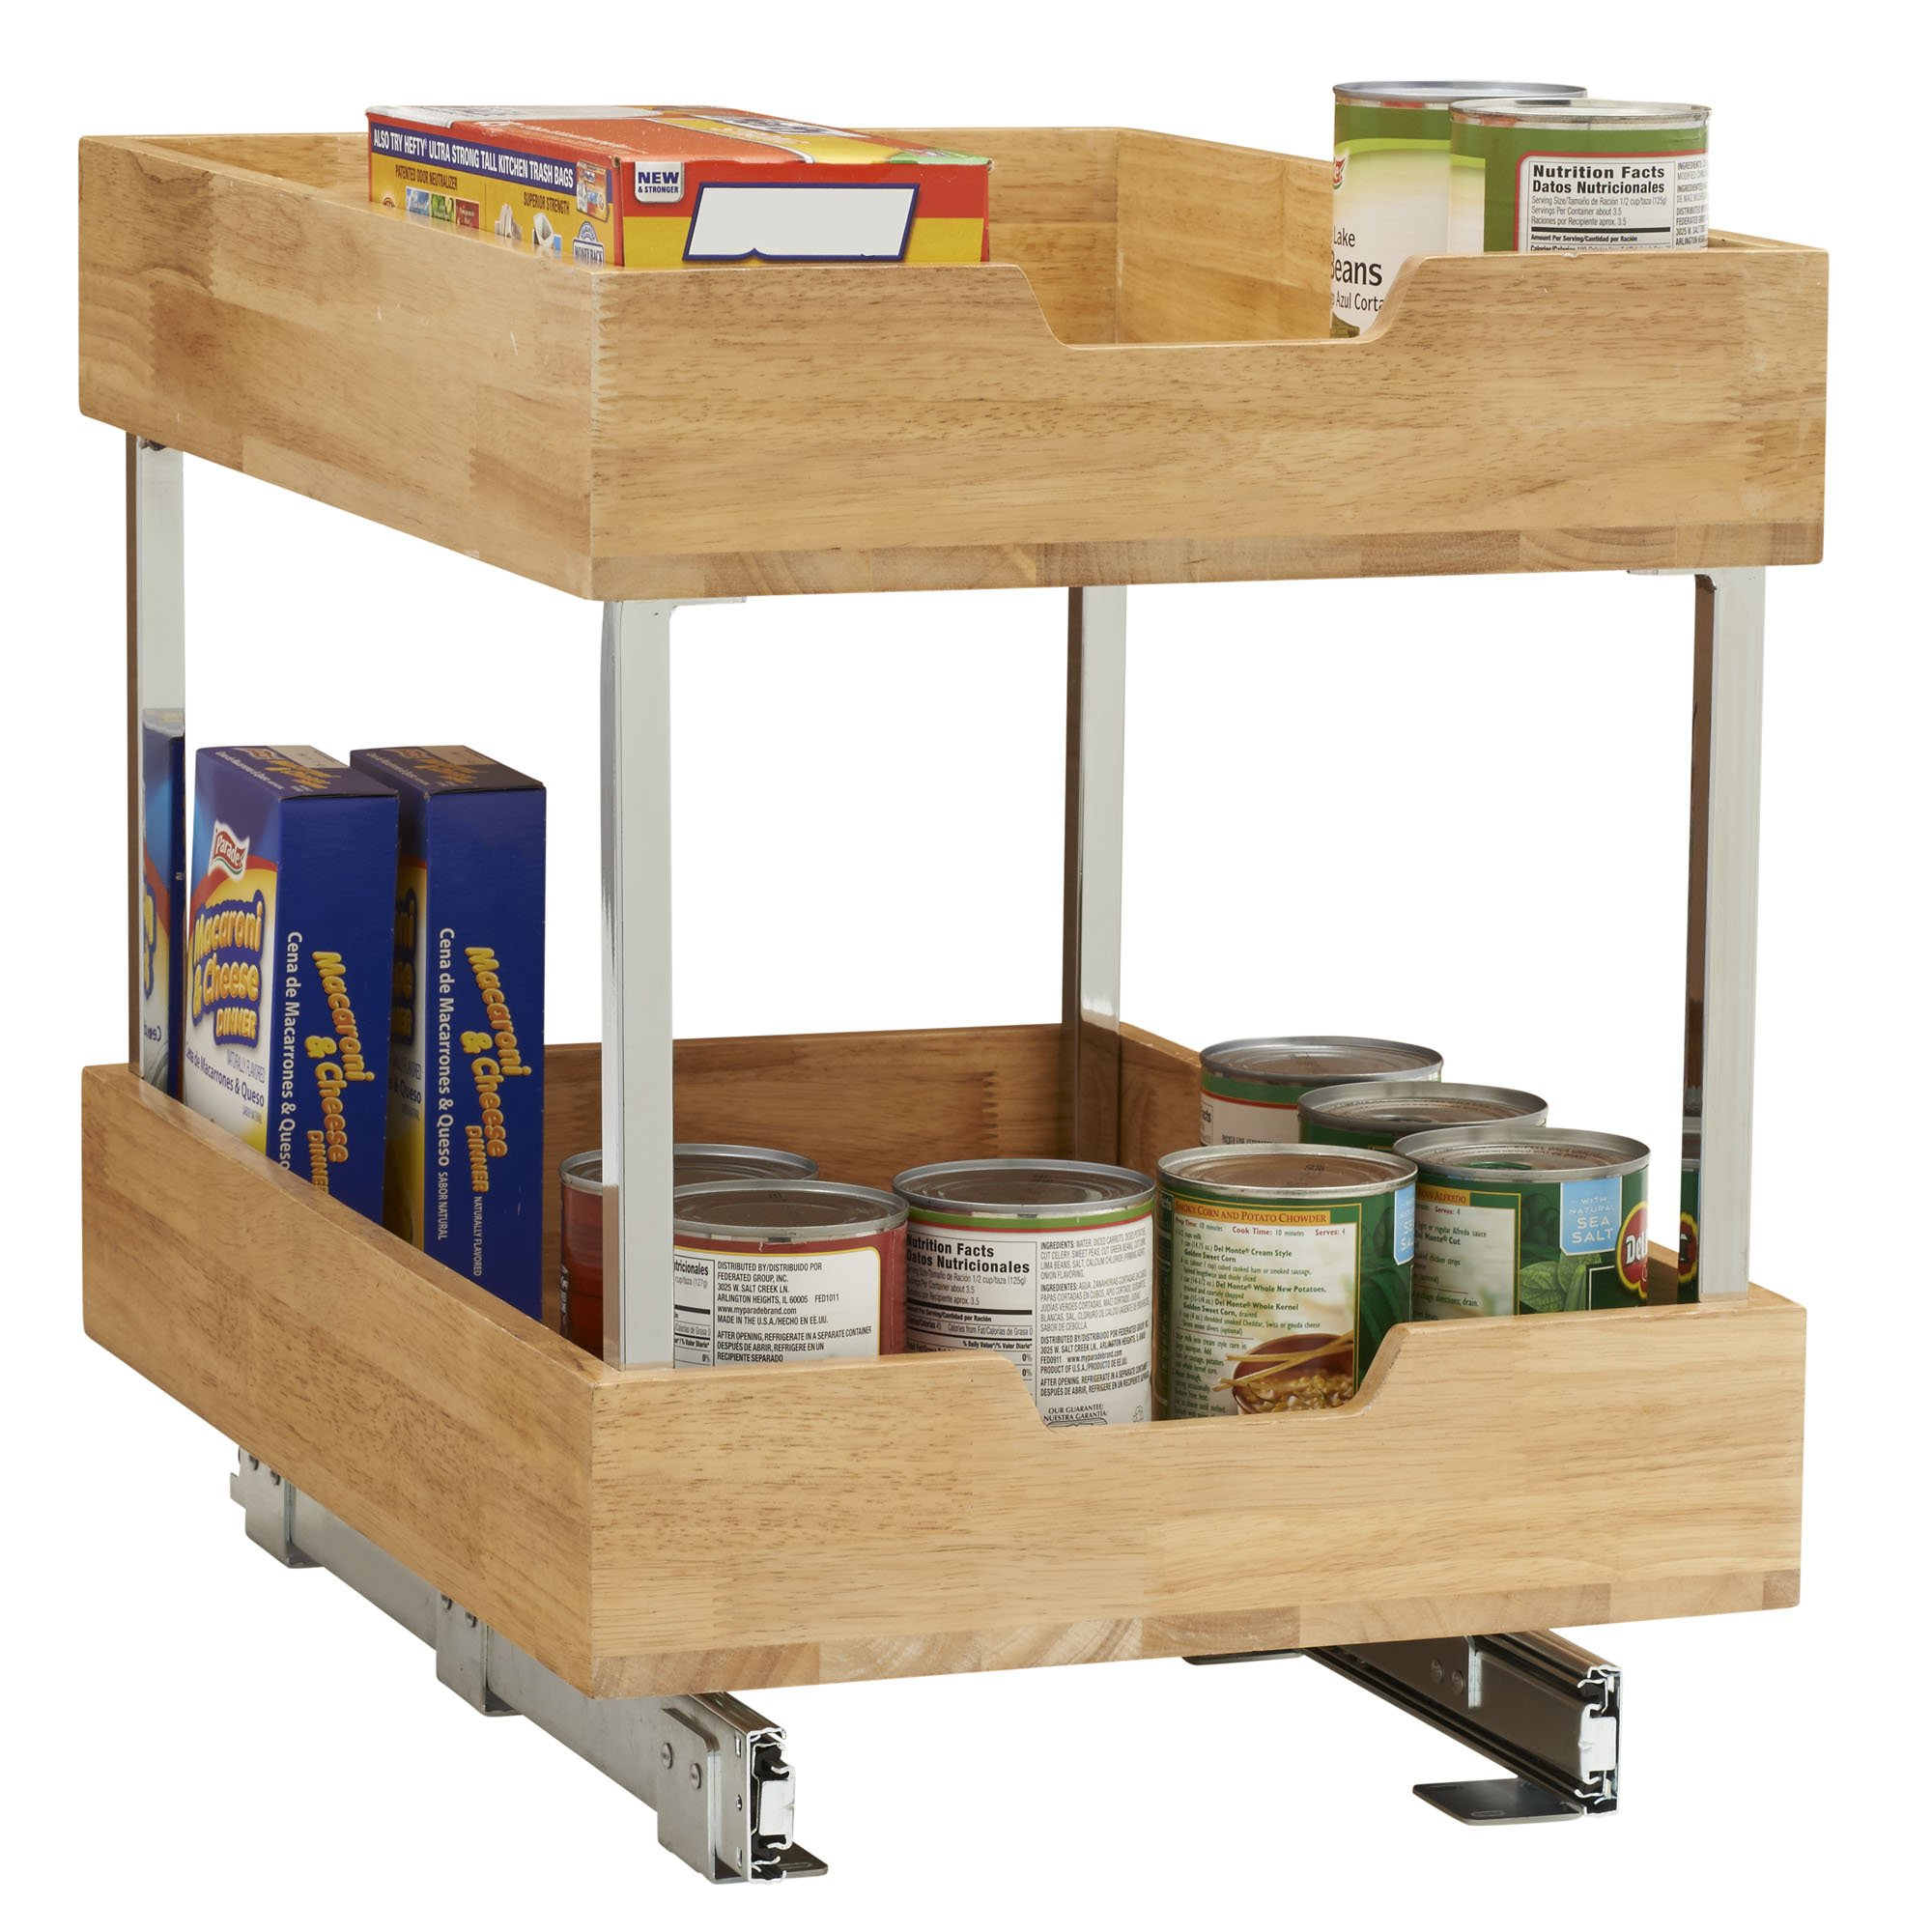 Household Essentials 24521-1 Glidez 2-Tier Sliding Organizer - Pull Out Cabinet Shelf - Wood - 14.5 Inches Wide by Household Essentials (Image #2)